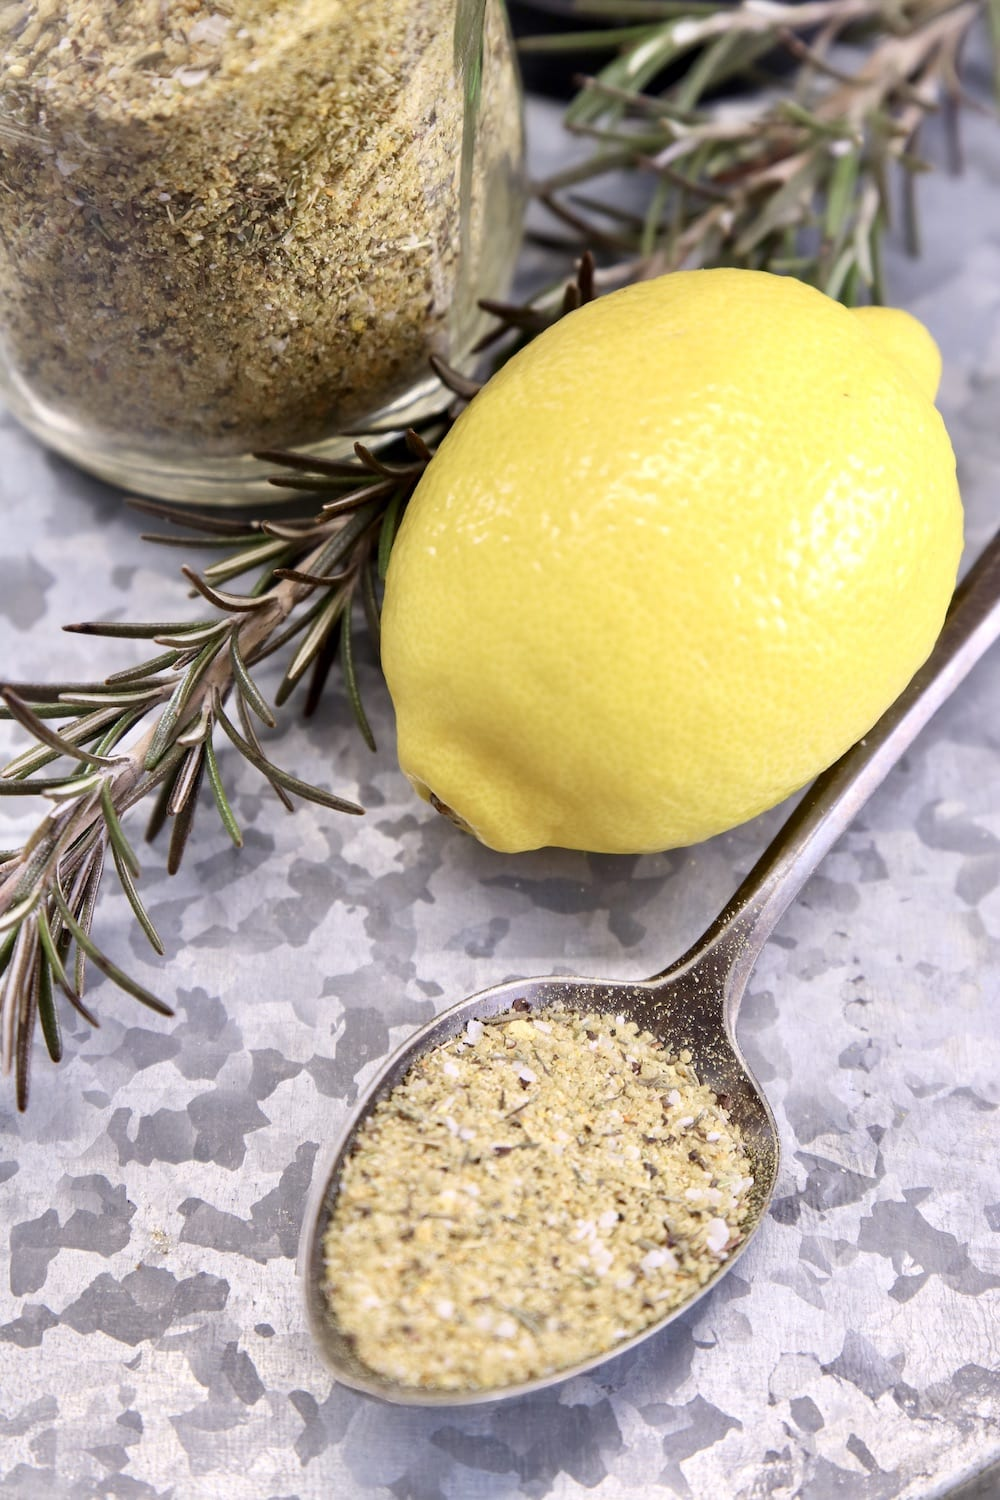 lemon rosemary dry rub on a spoon on a tray with whole lemon, rosemary sprig, jar of spices